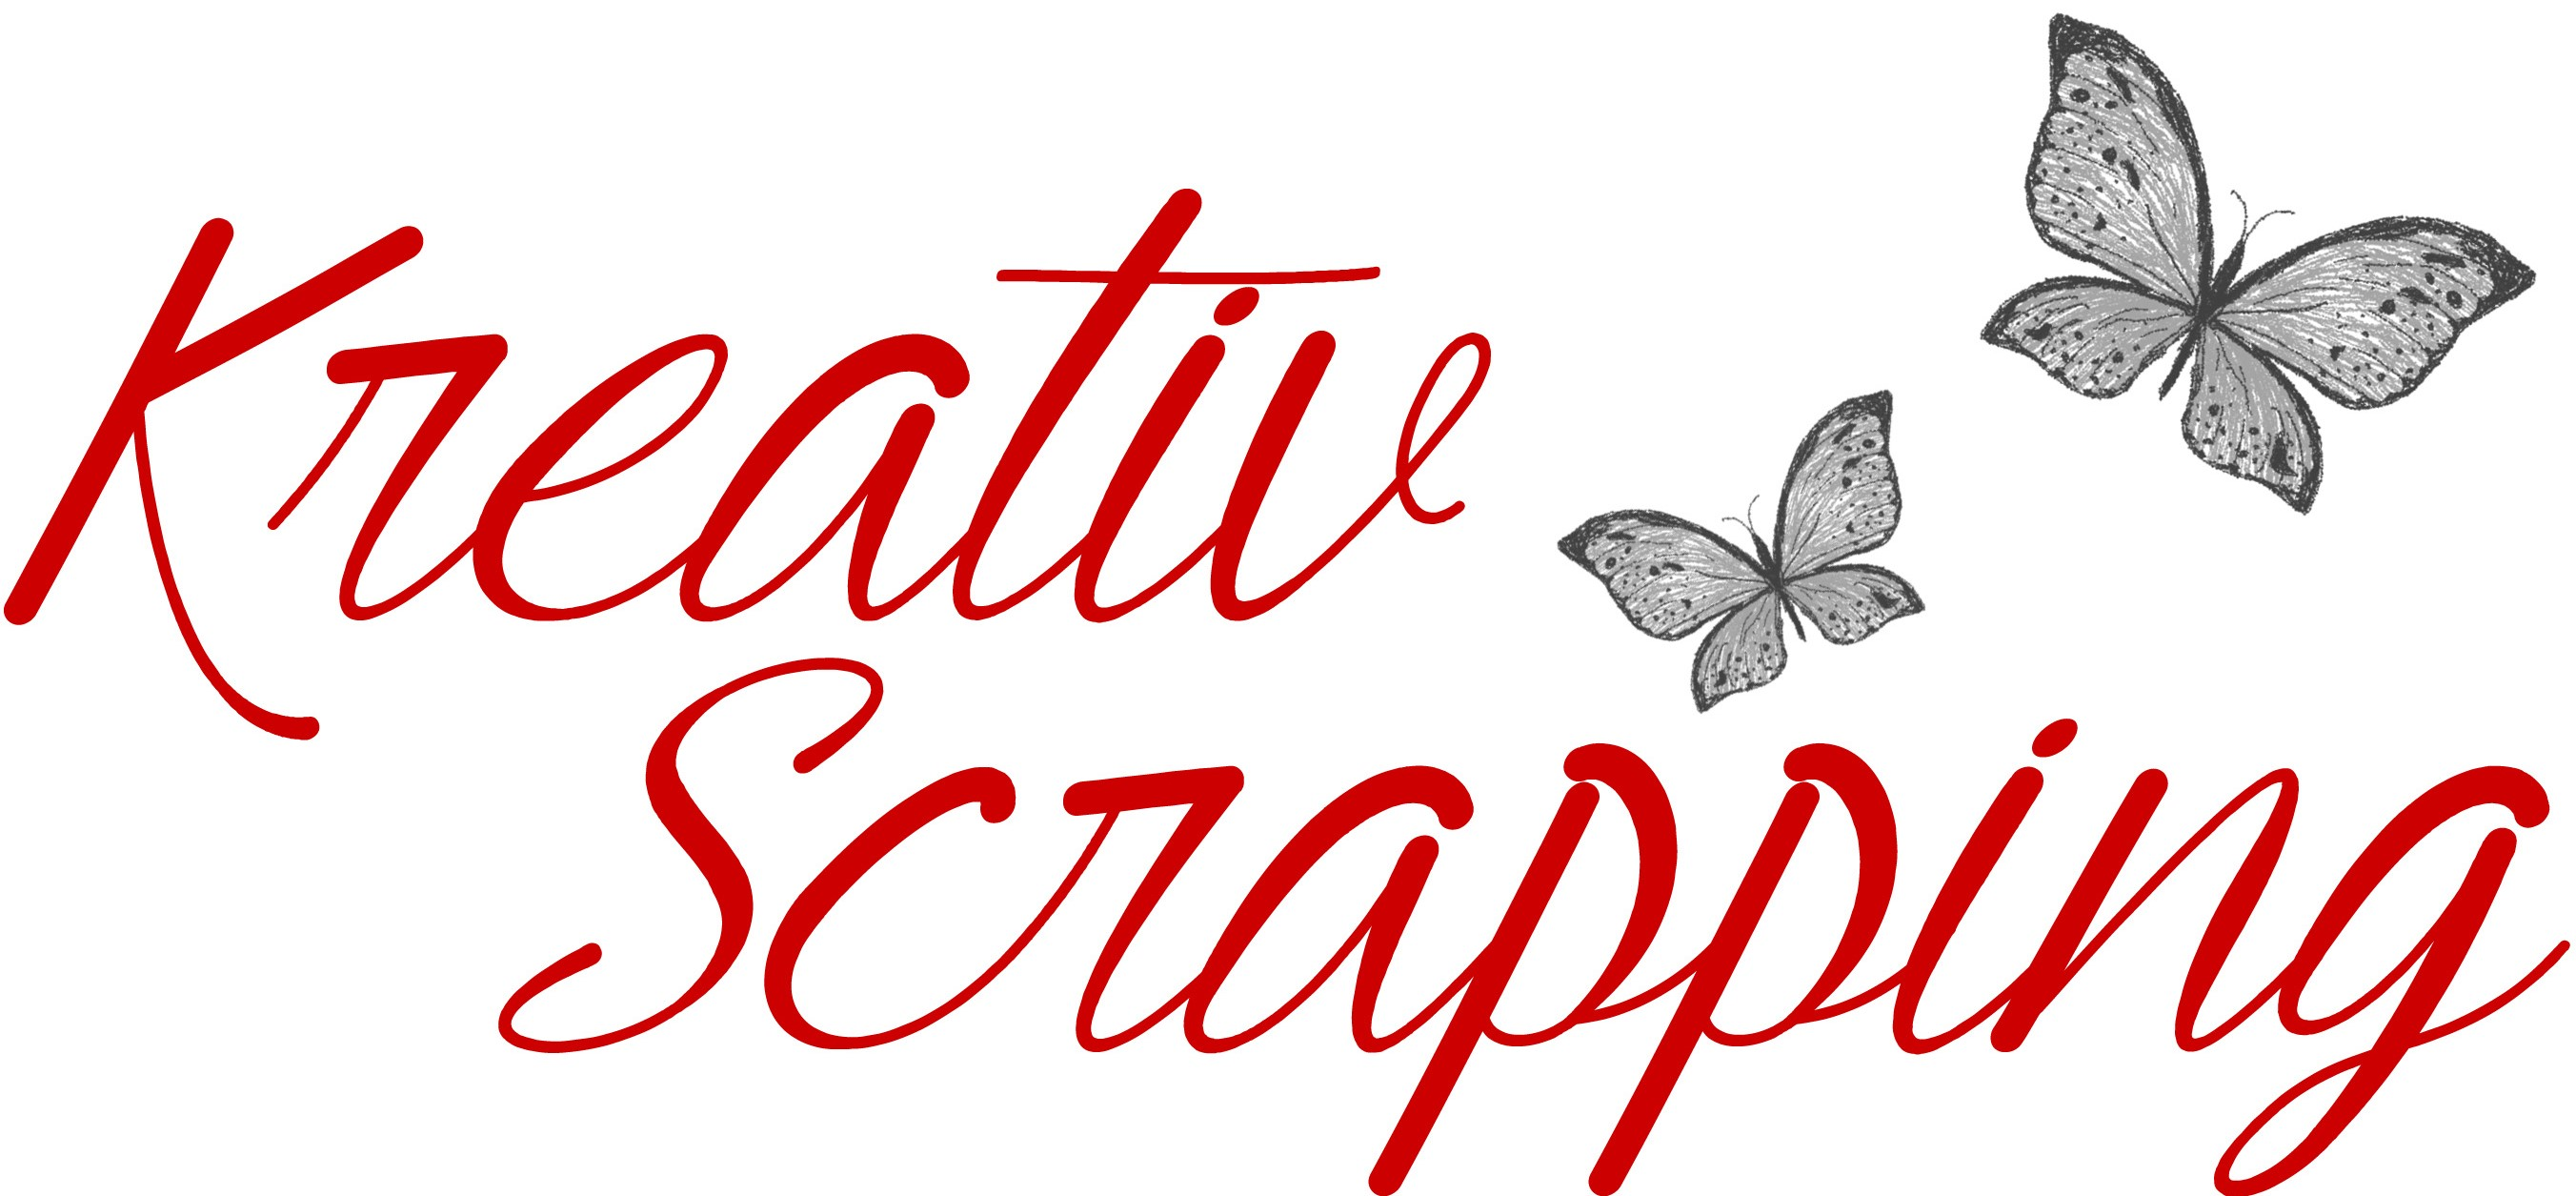 Kreativ Scrapping